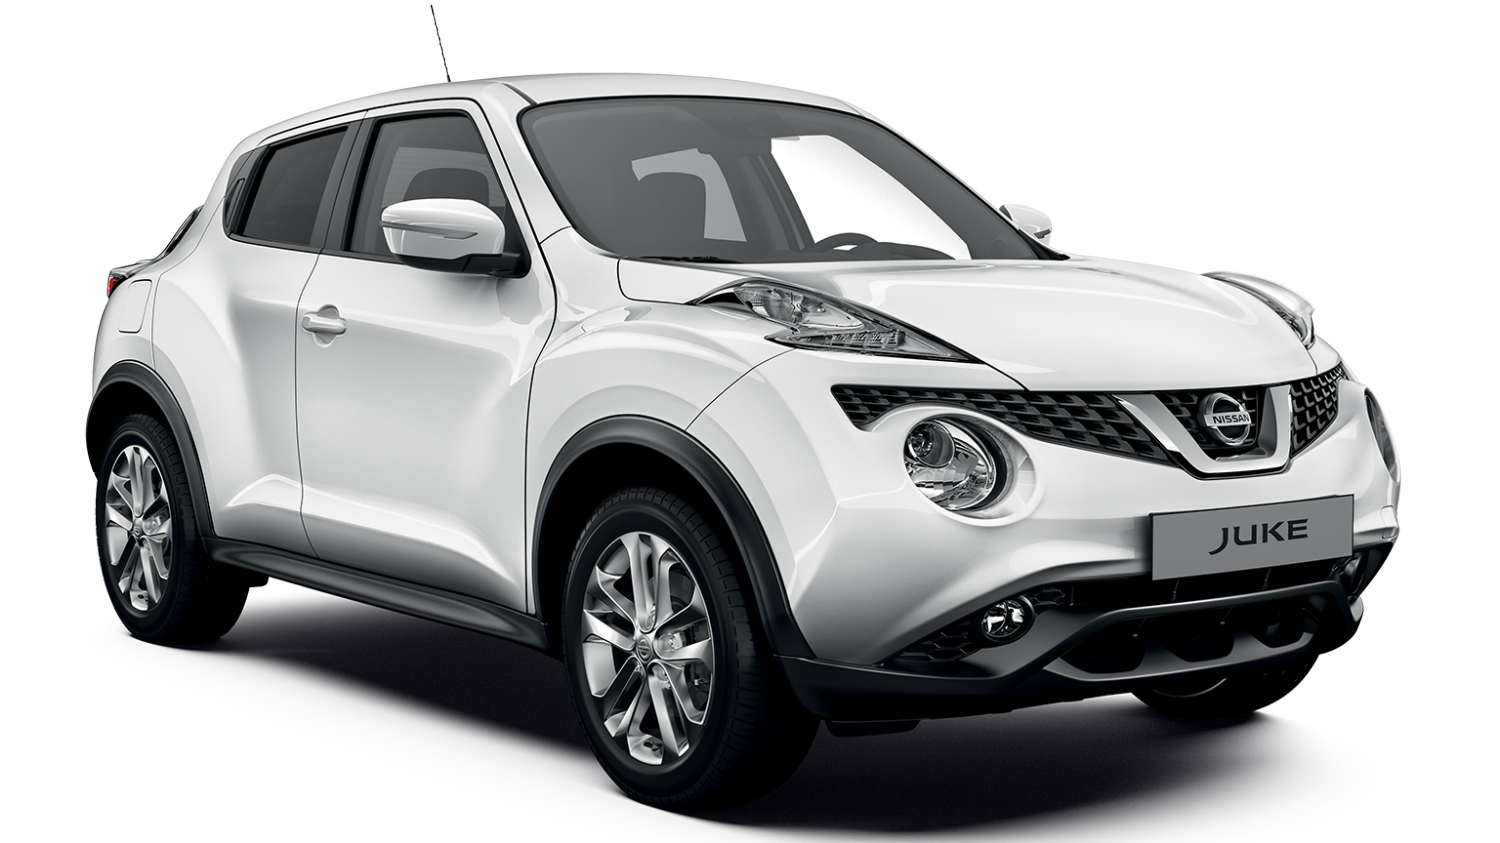 Nissan Juke - Business